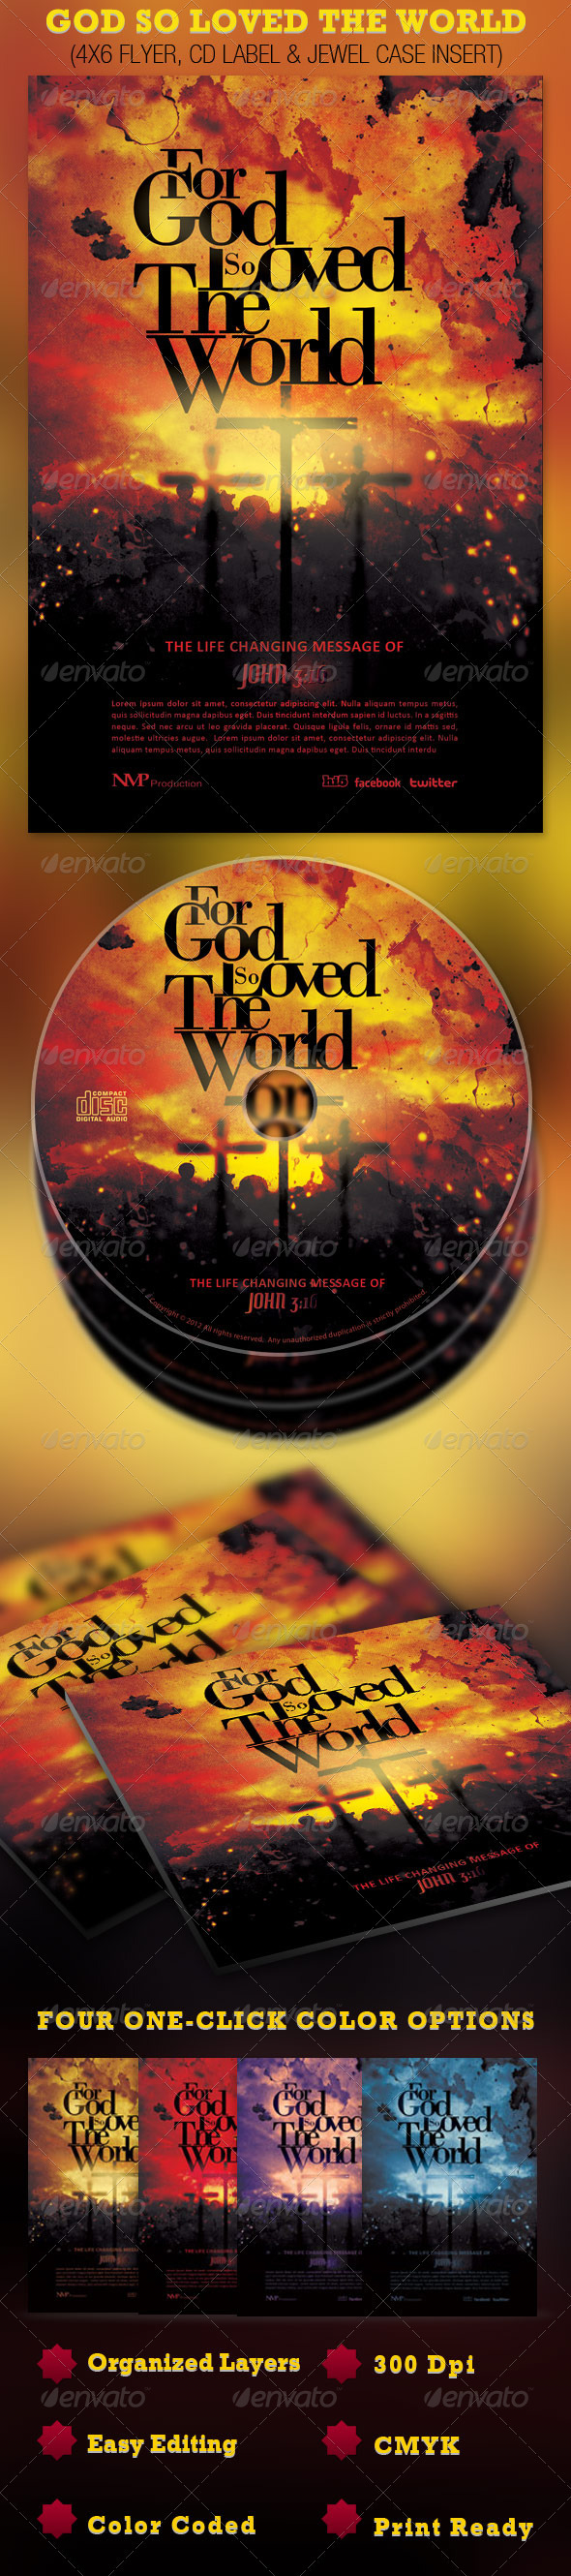 God So Loved The World Flyer and CD Template - Church Flyers